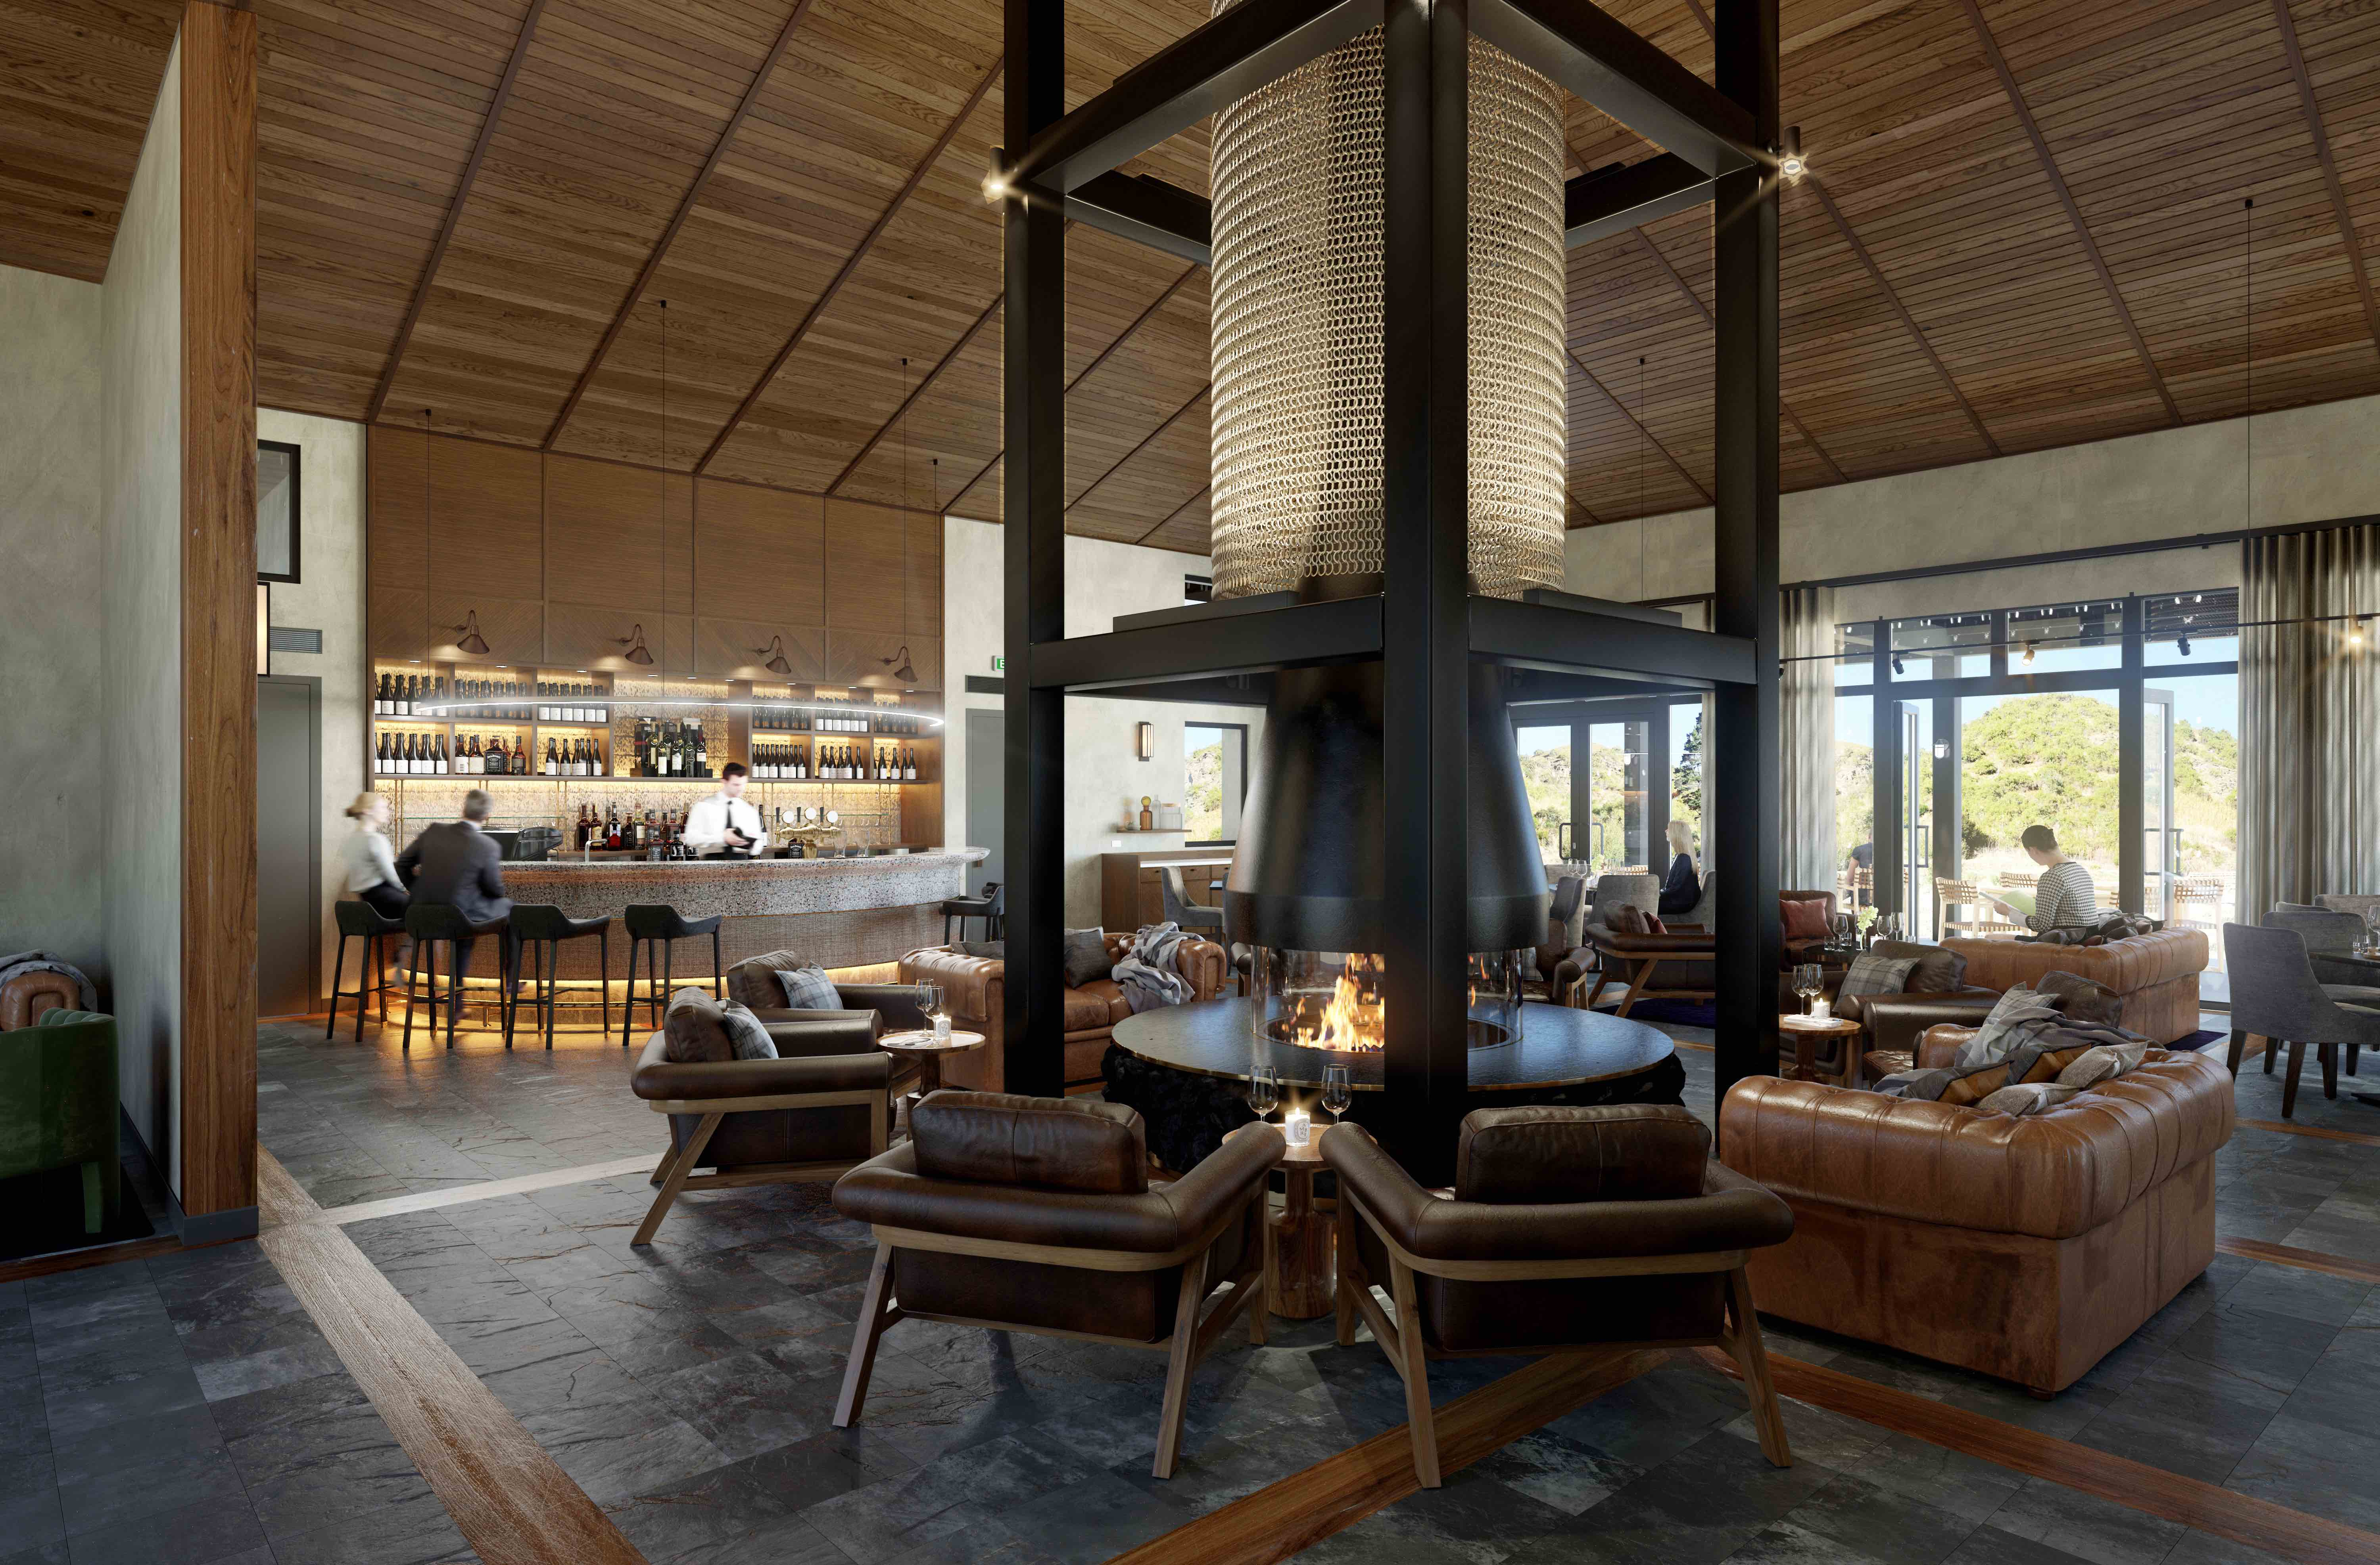 Gibbston Valley Lodge & Spa Render - Main Lodge Room